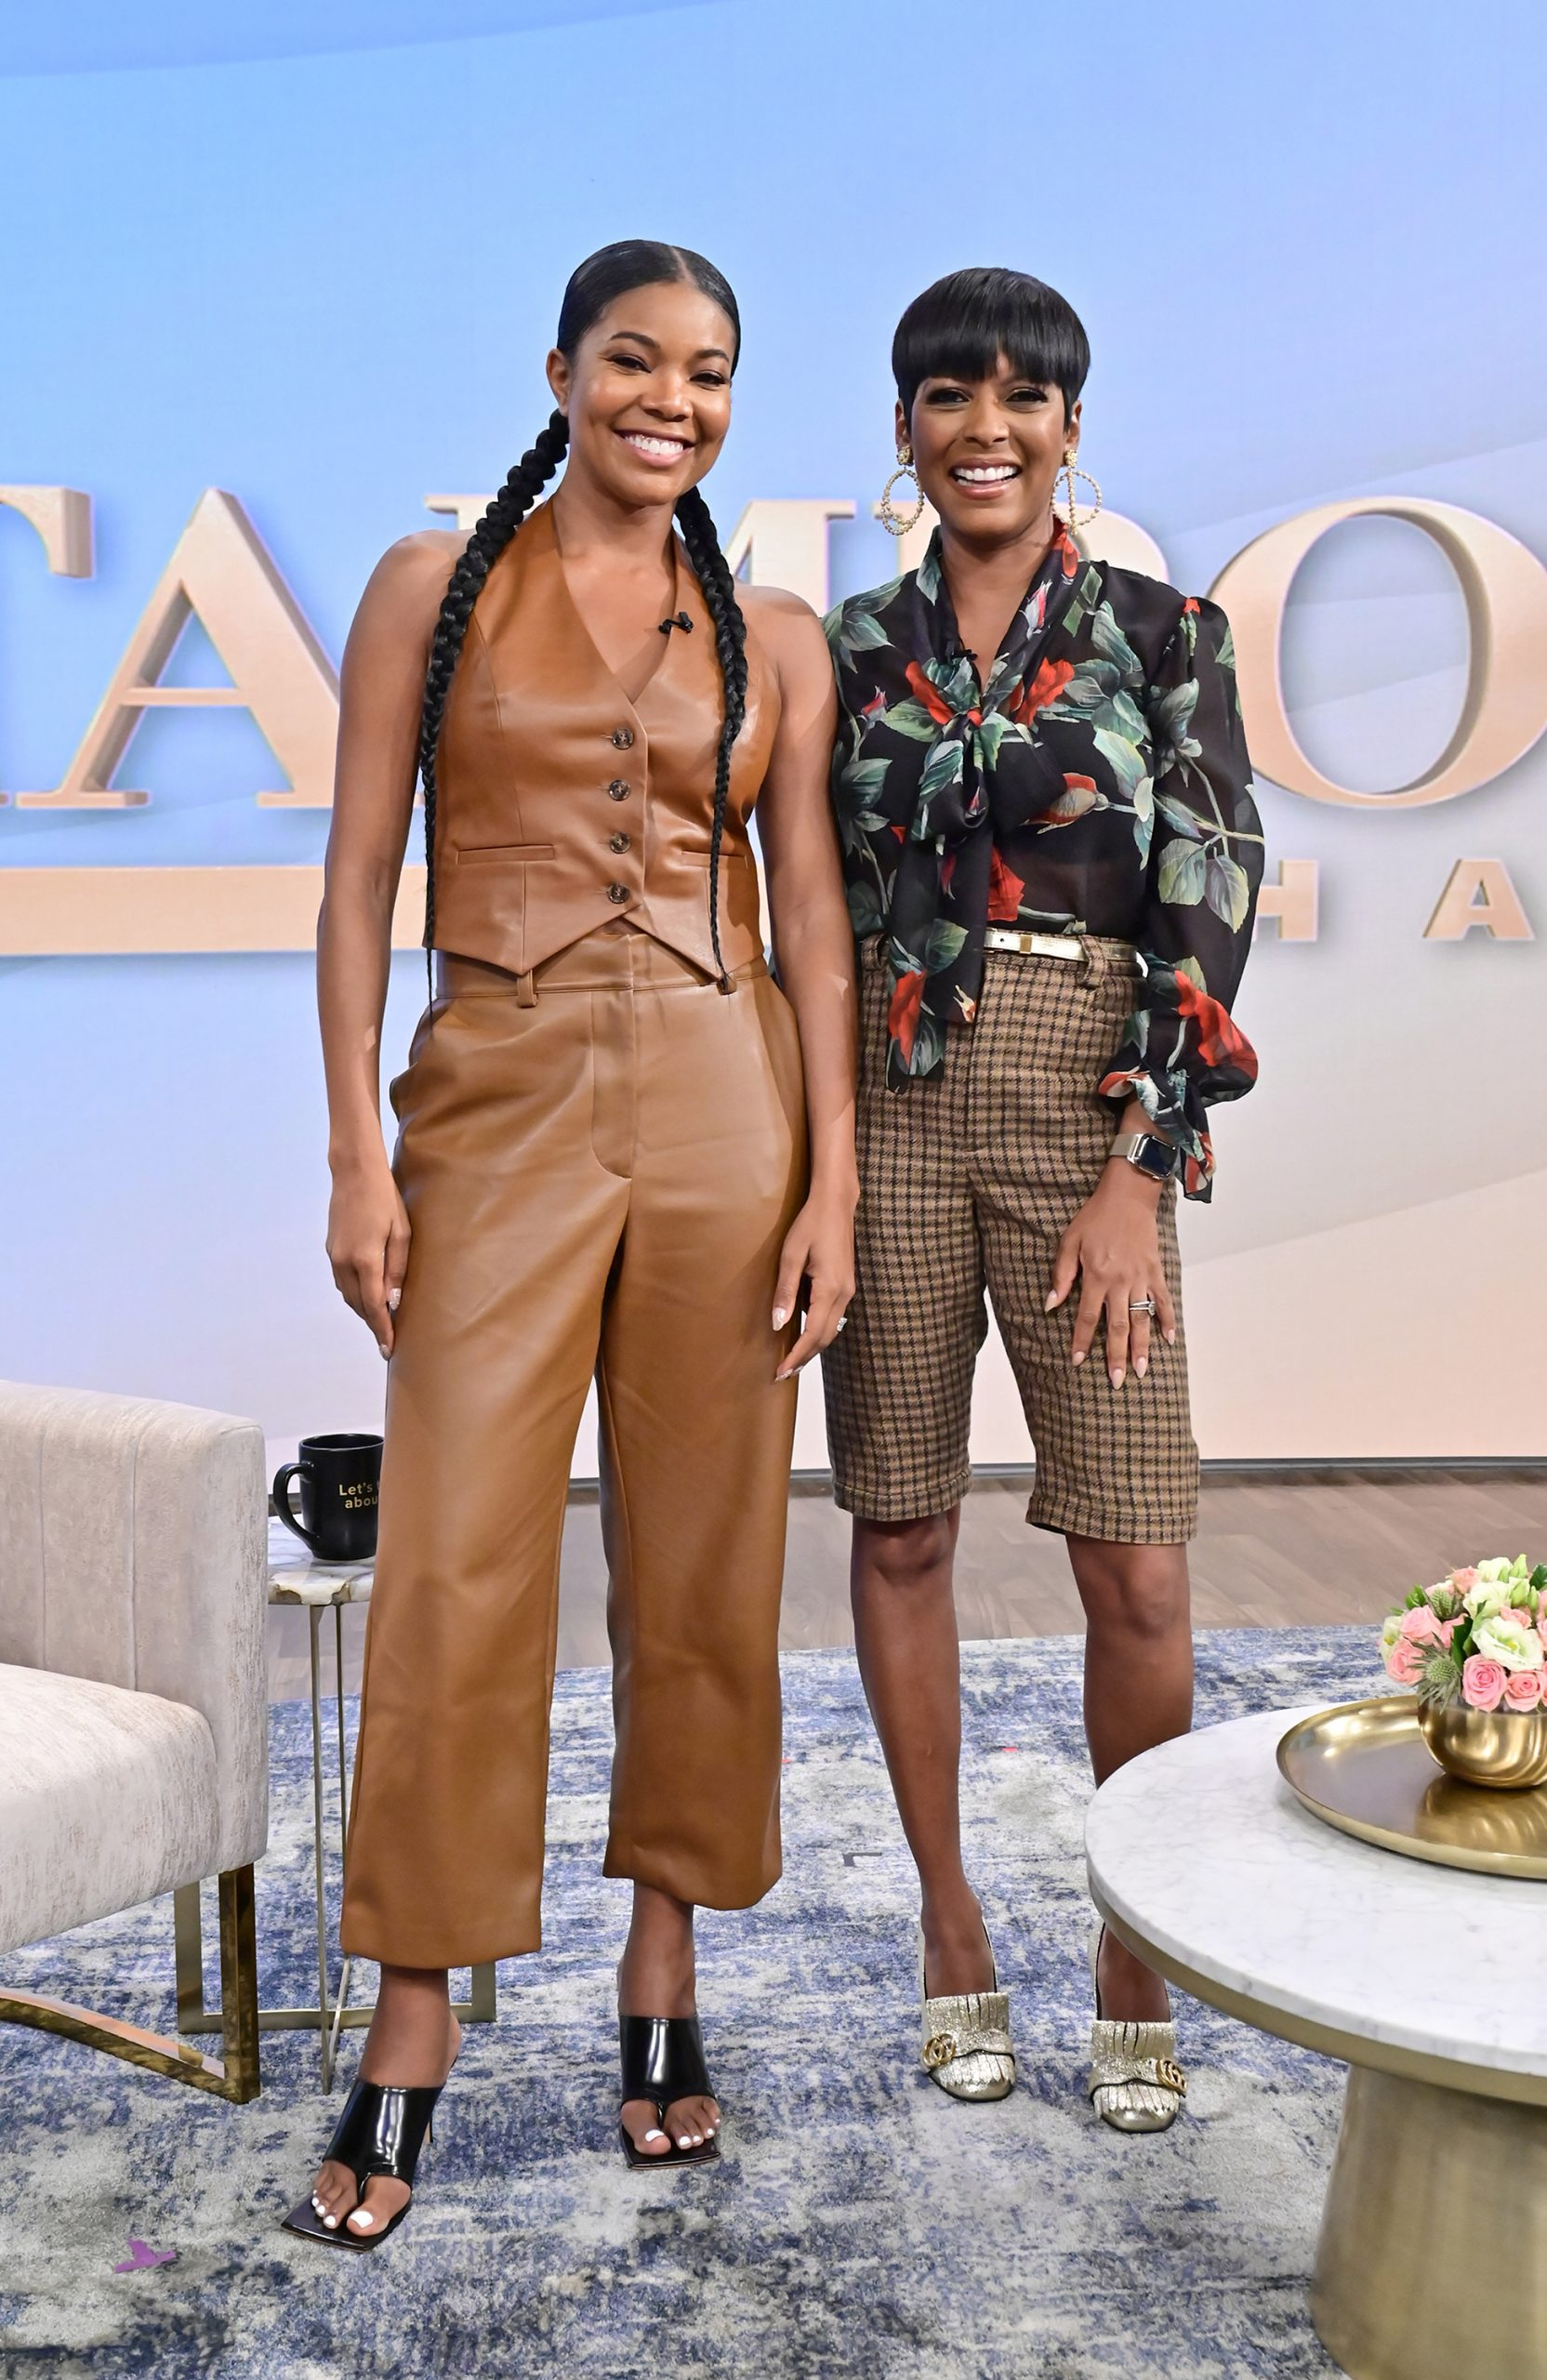 """Gabrielle Union Shares Her Regret For Her Portrayal of Isis In """"Bring It On"""" on """"Tamron Hall"""""""